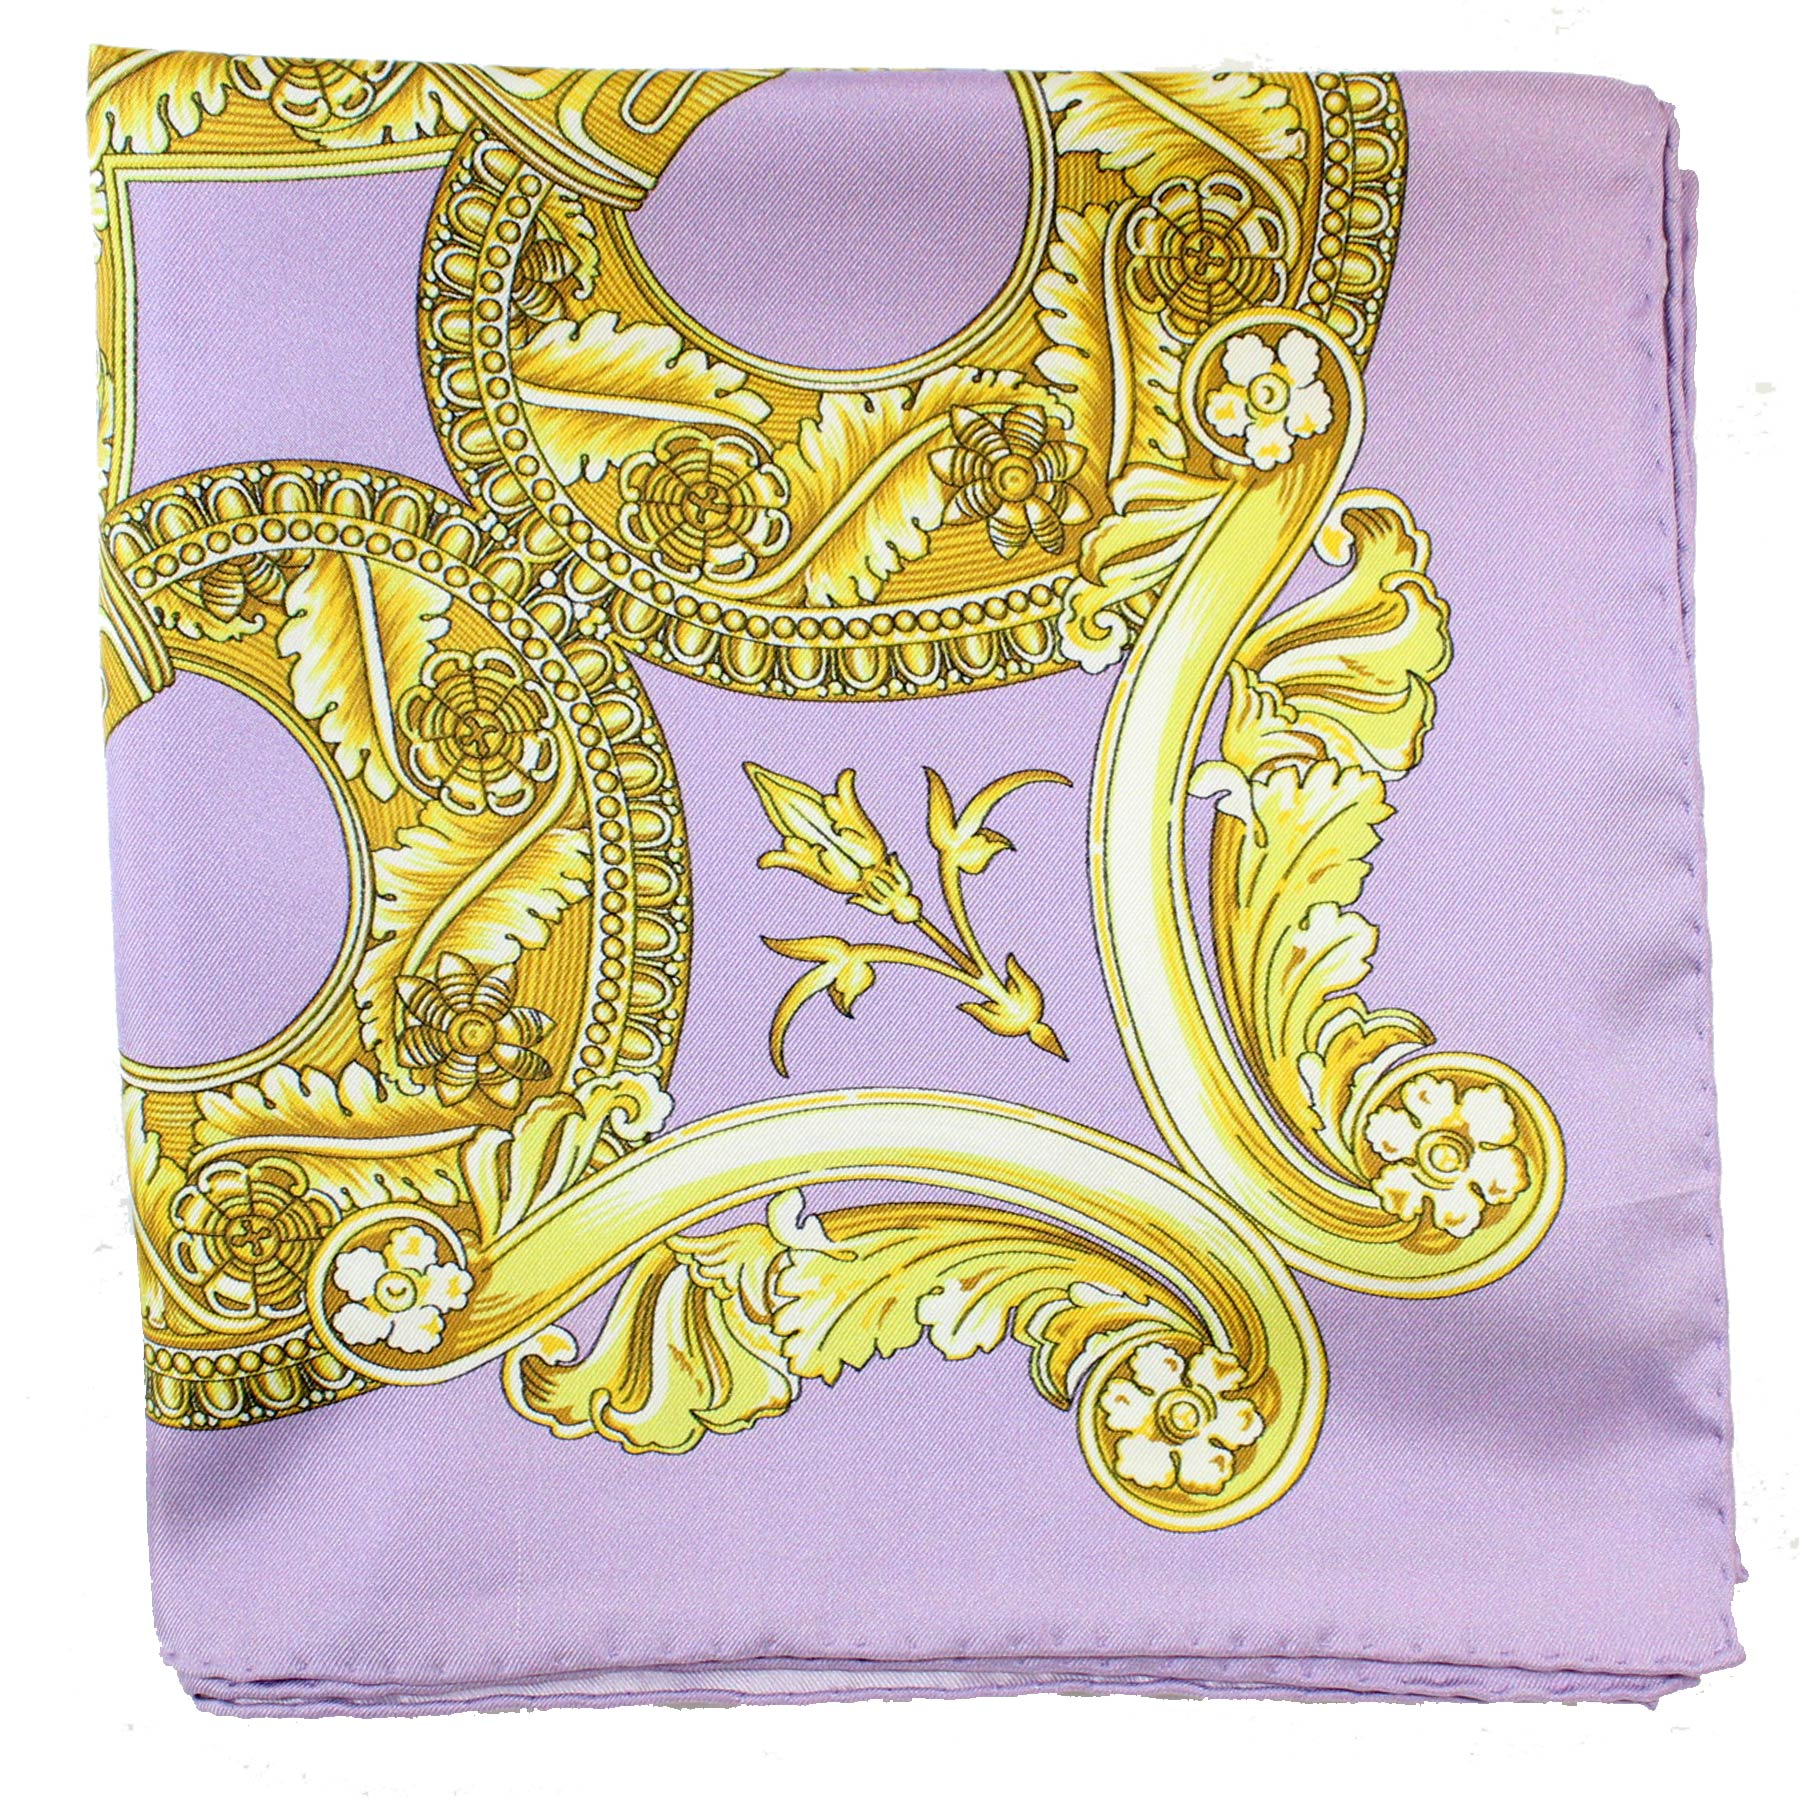 Versace Scarf Lilac Gold Baroque Medusa -  Square Scarf